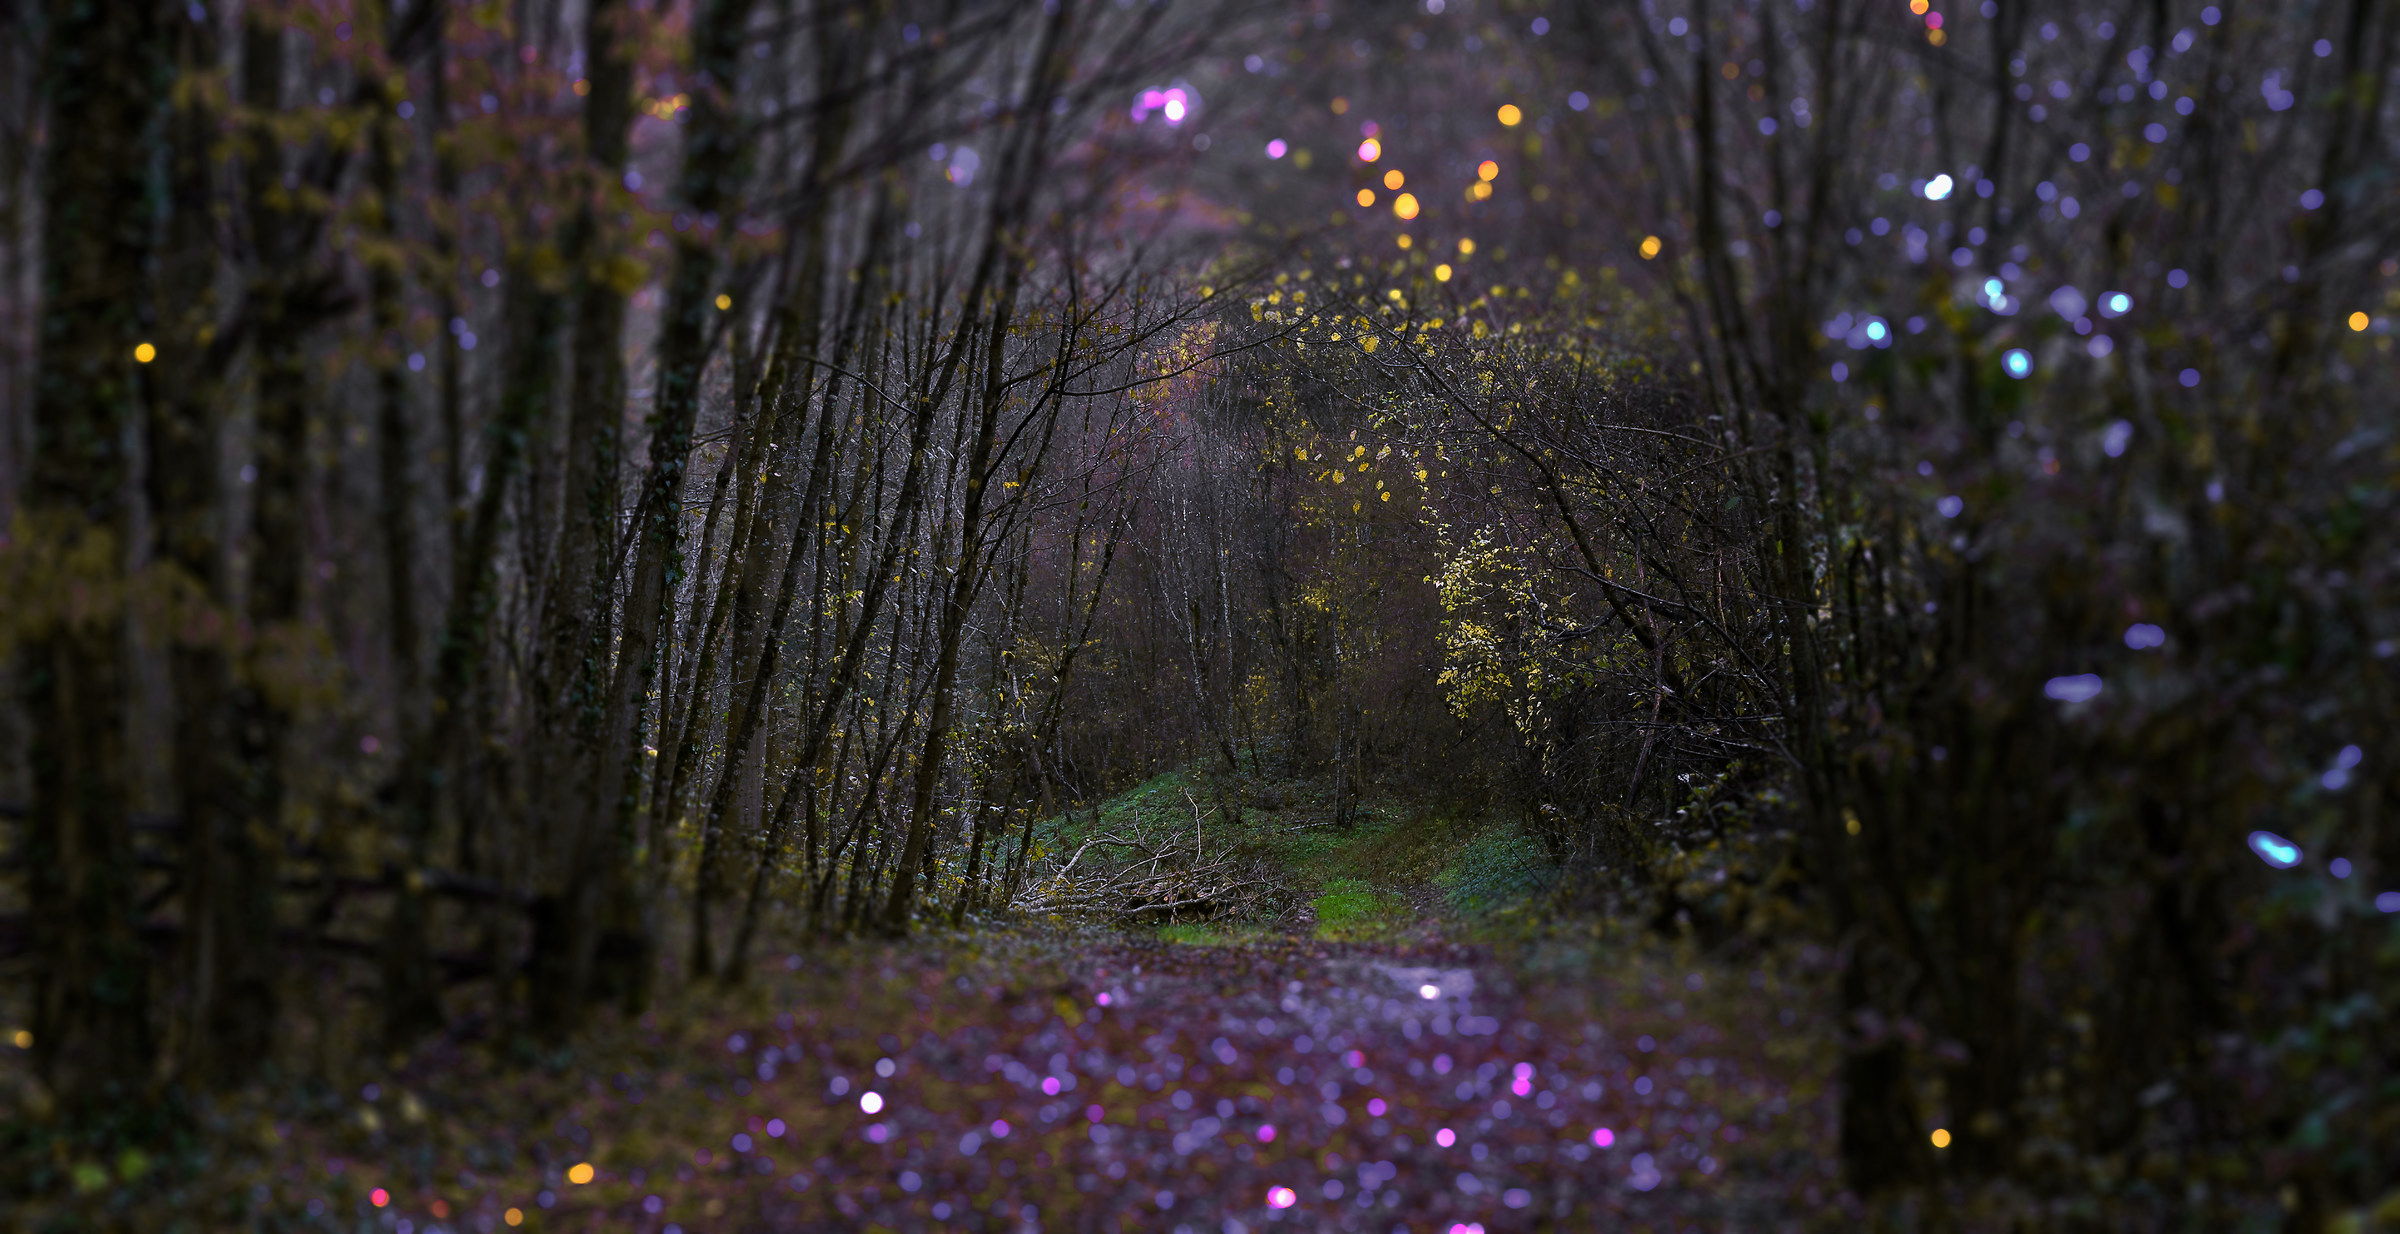 The forest in evening dress...